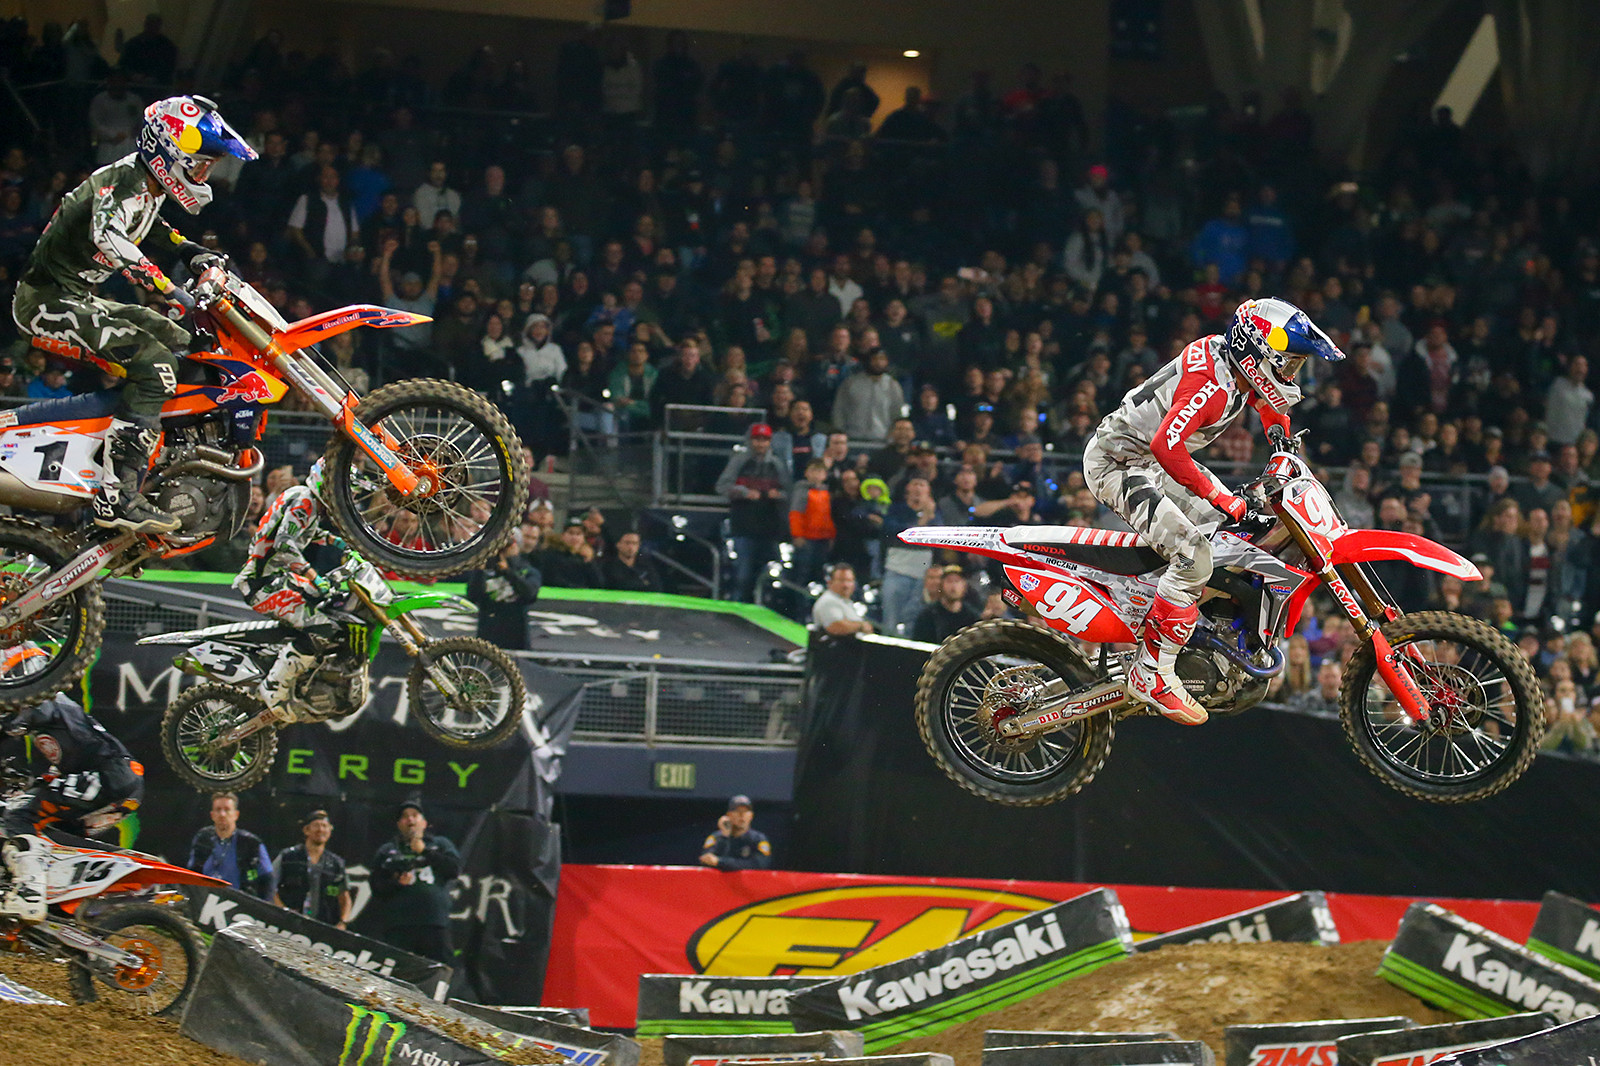 After seeing Ken Roczen obliterate the field at A1, Ryan Dungey came back strong to put the pressure on Kenny in San Diego. While he finished in second spot, he showed that he was more than game to give him a fight for the title. But...we're not sure we've seen the same Ryan since Kenny's crash.